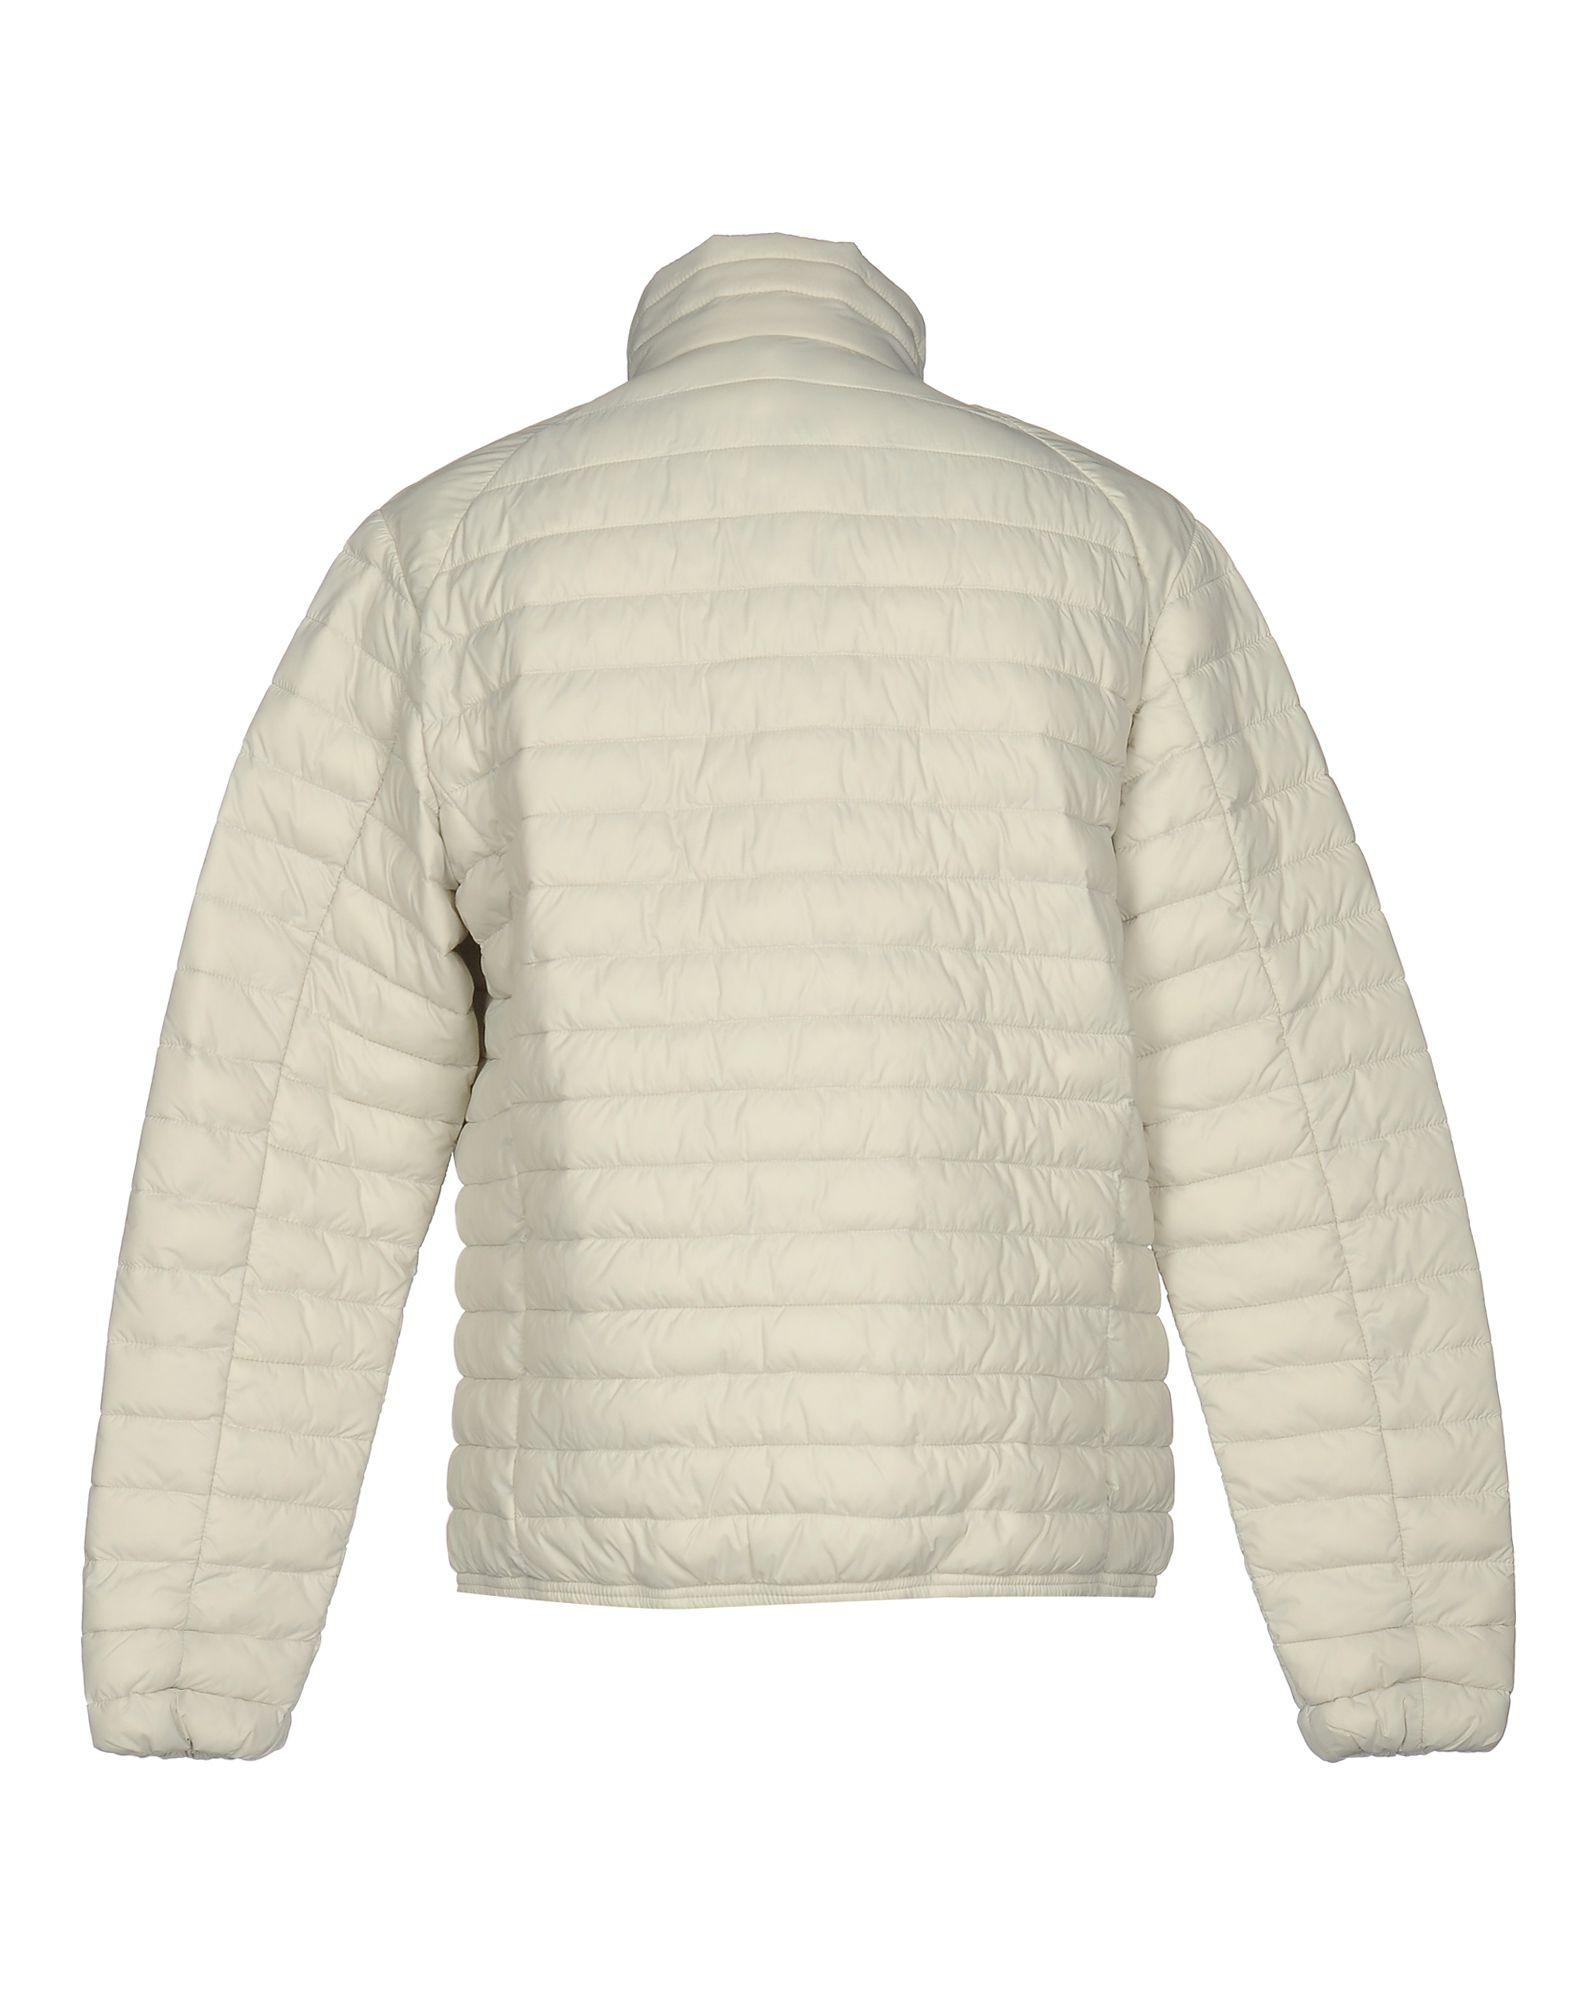 Save The Duck Synthetic Down Jacket in Ivory (White) for Men